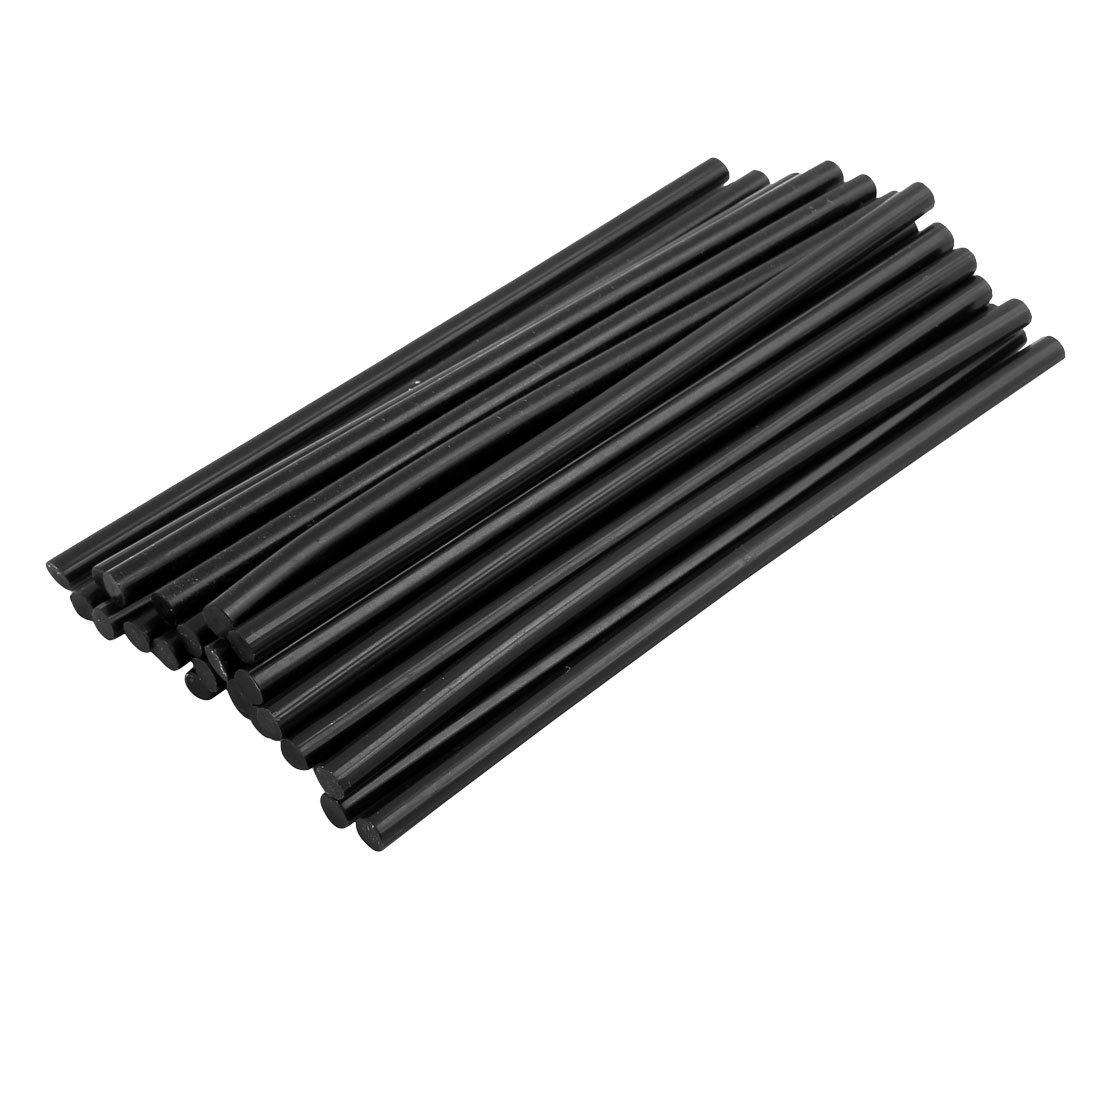 Unique Bargains 30 Pcs Black 7mm Diameter Soldering Iron Hot Melt Glue Stick 190mm Length